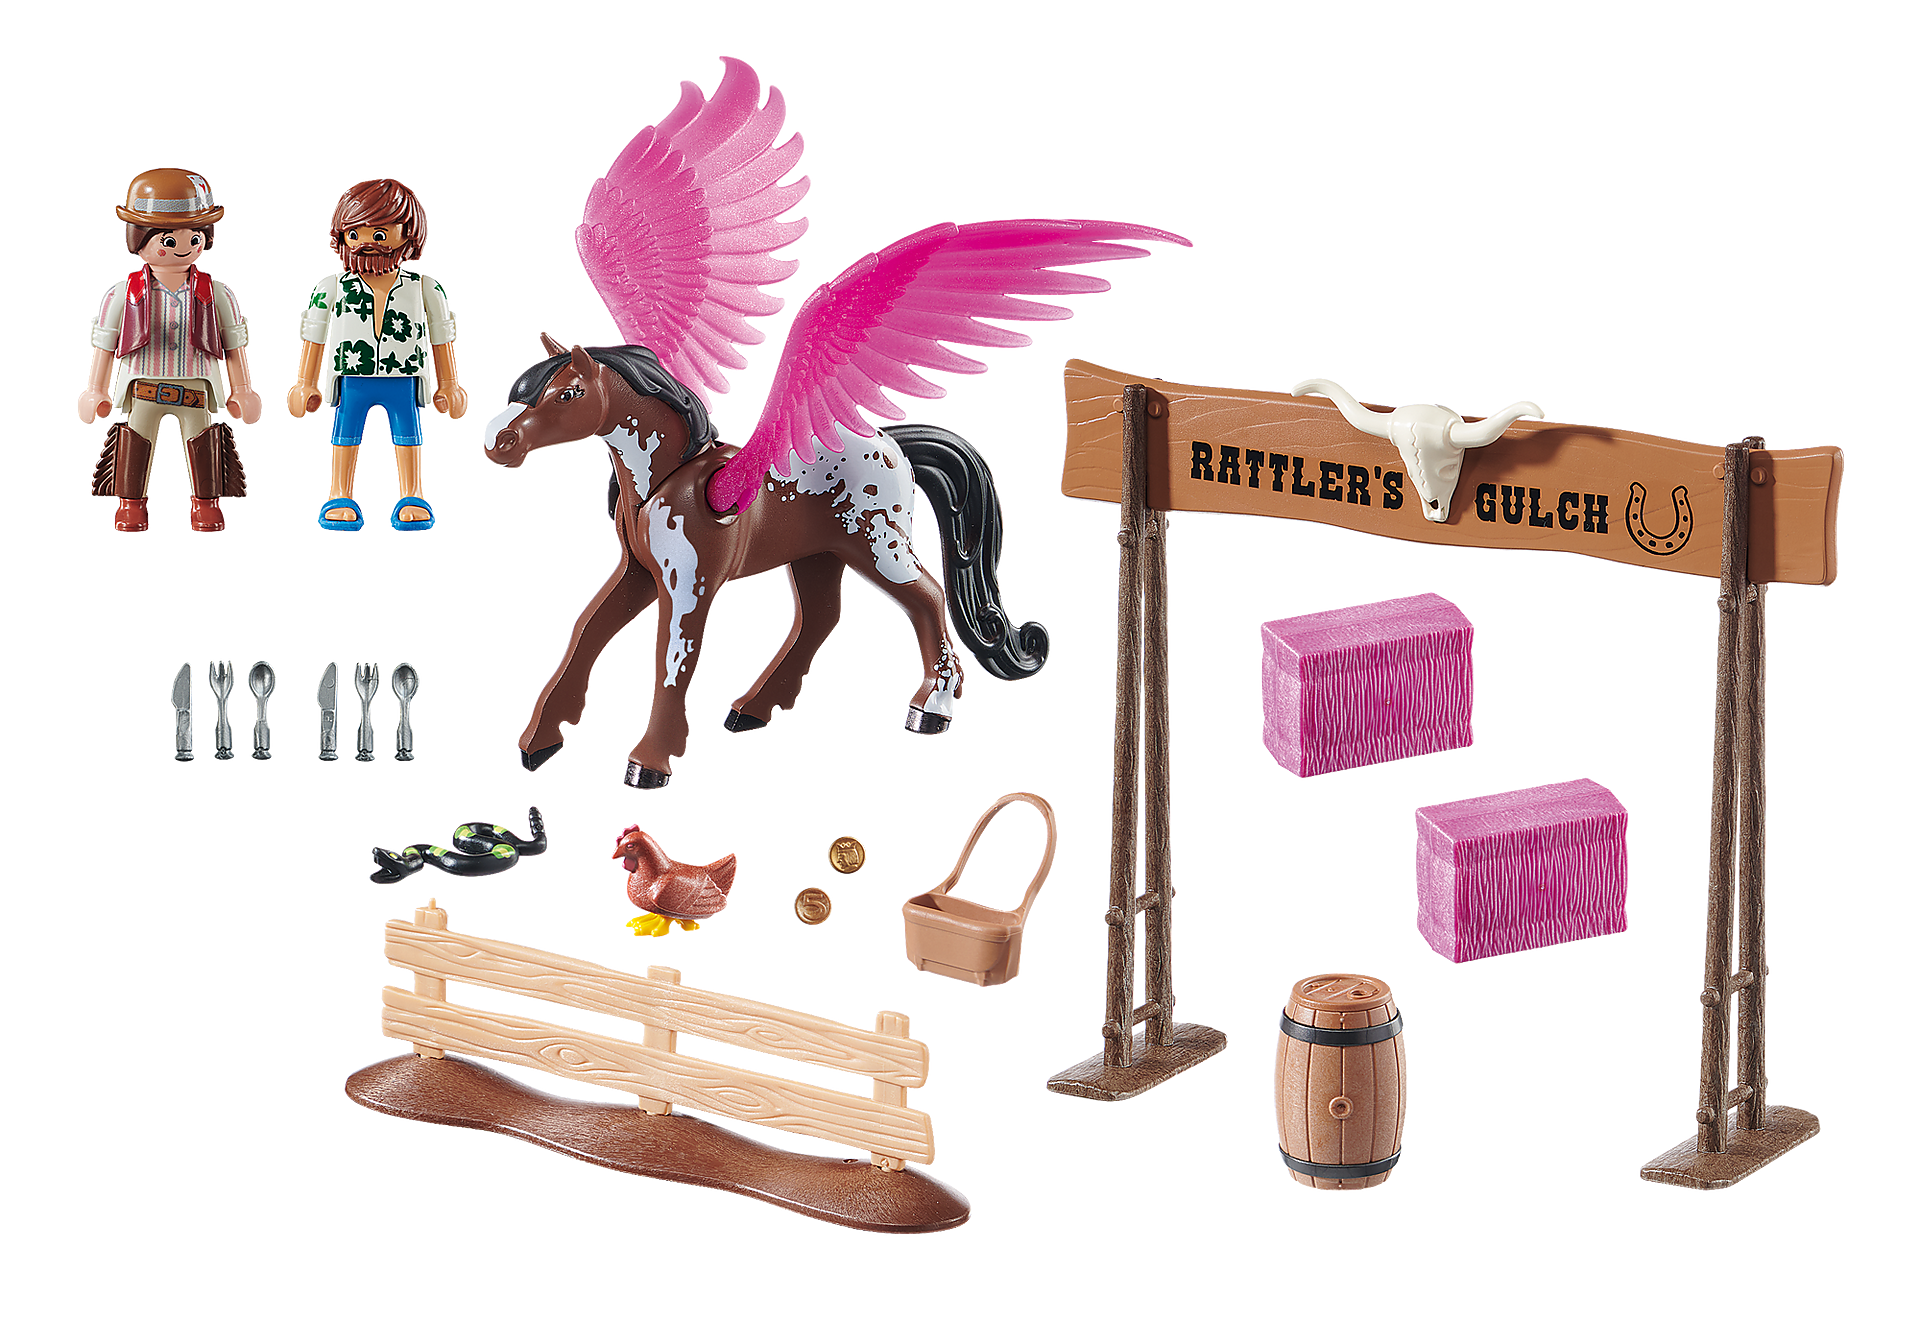 http://media.playmobil.com/i/playmobil/70074_product_box_back/PLAYMOBIL: THE MOVIE Marla en Del met gevleugeld paard